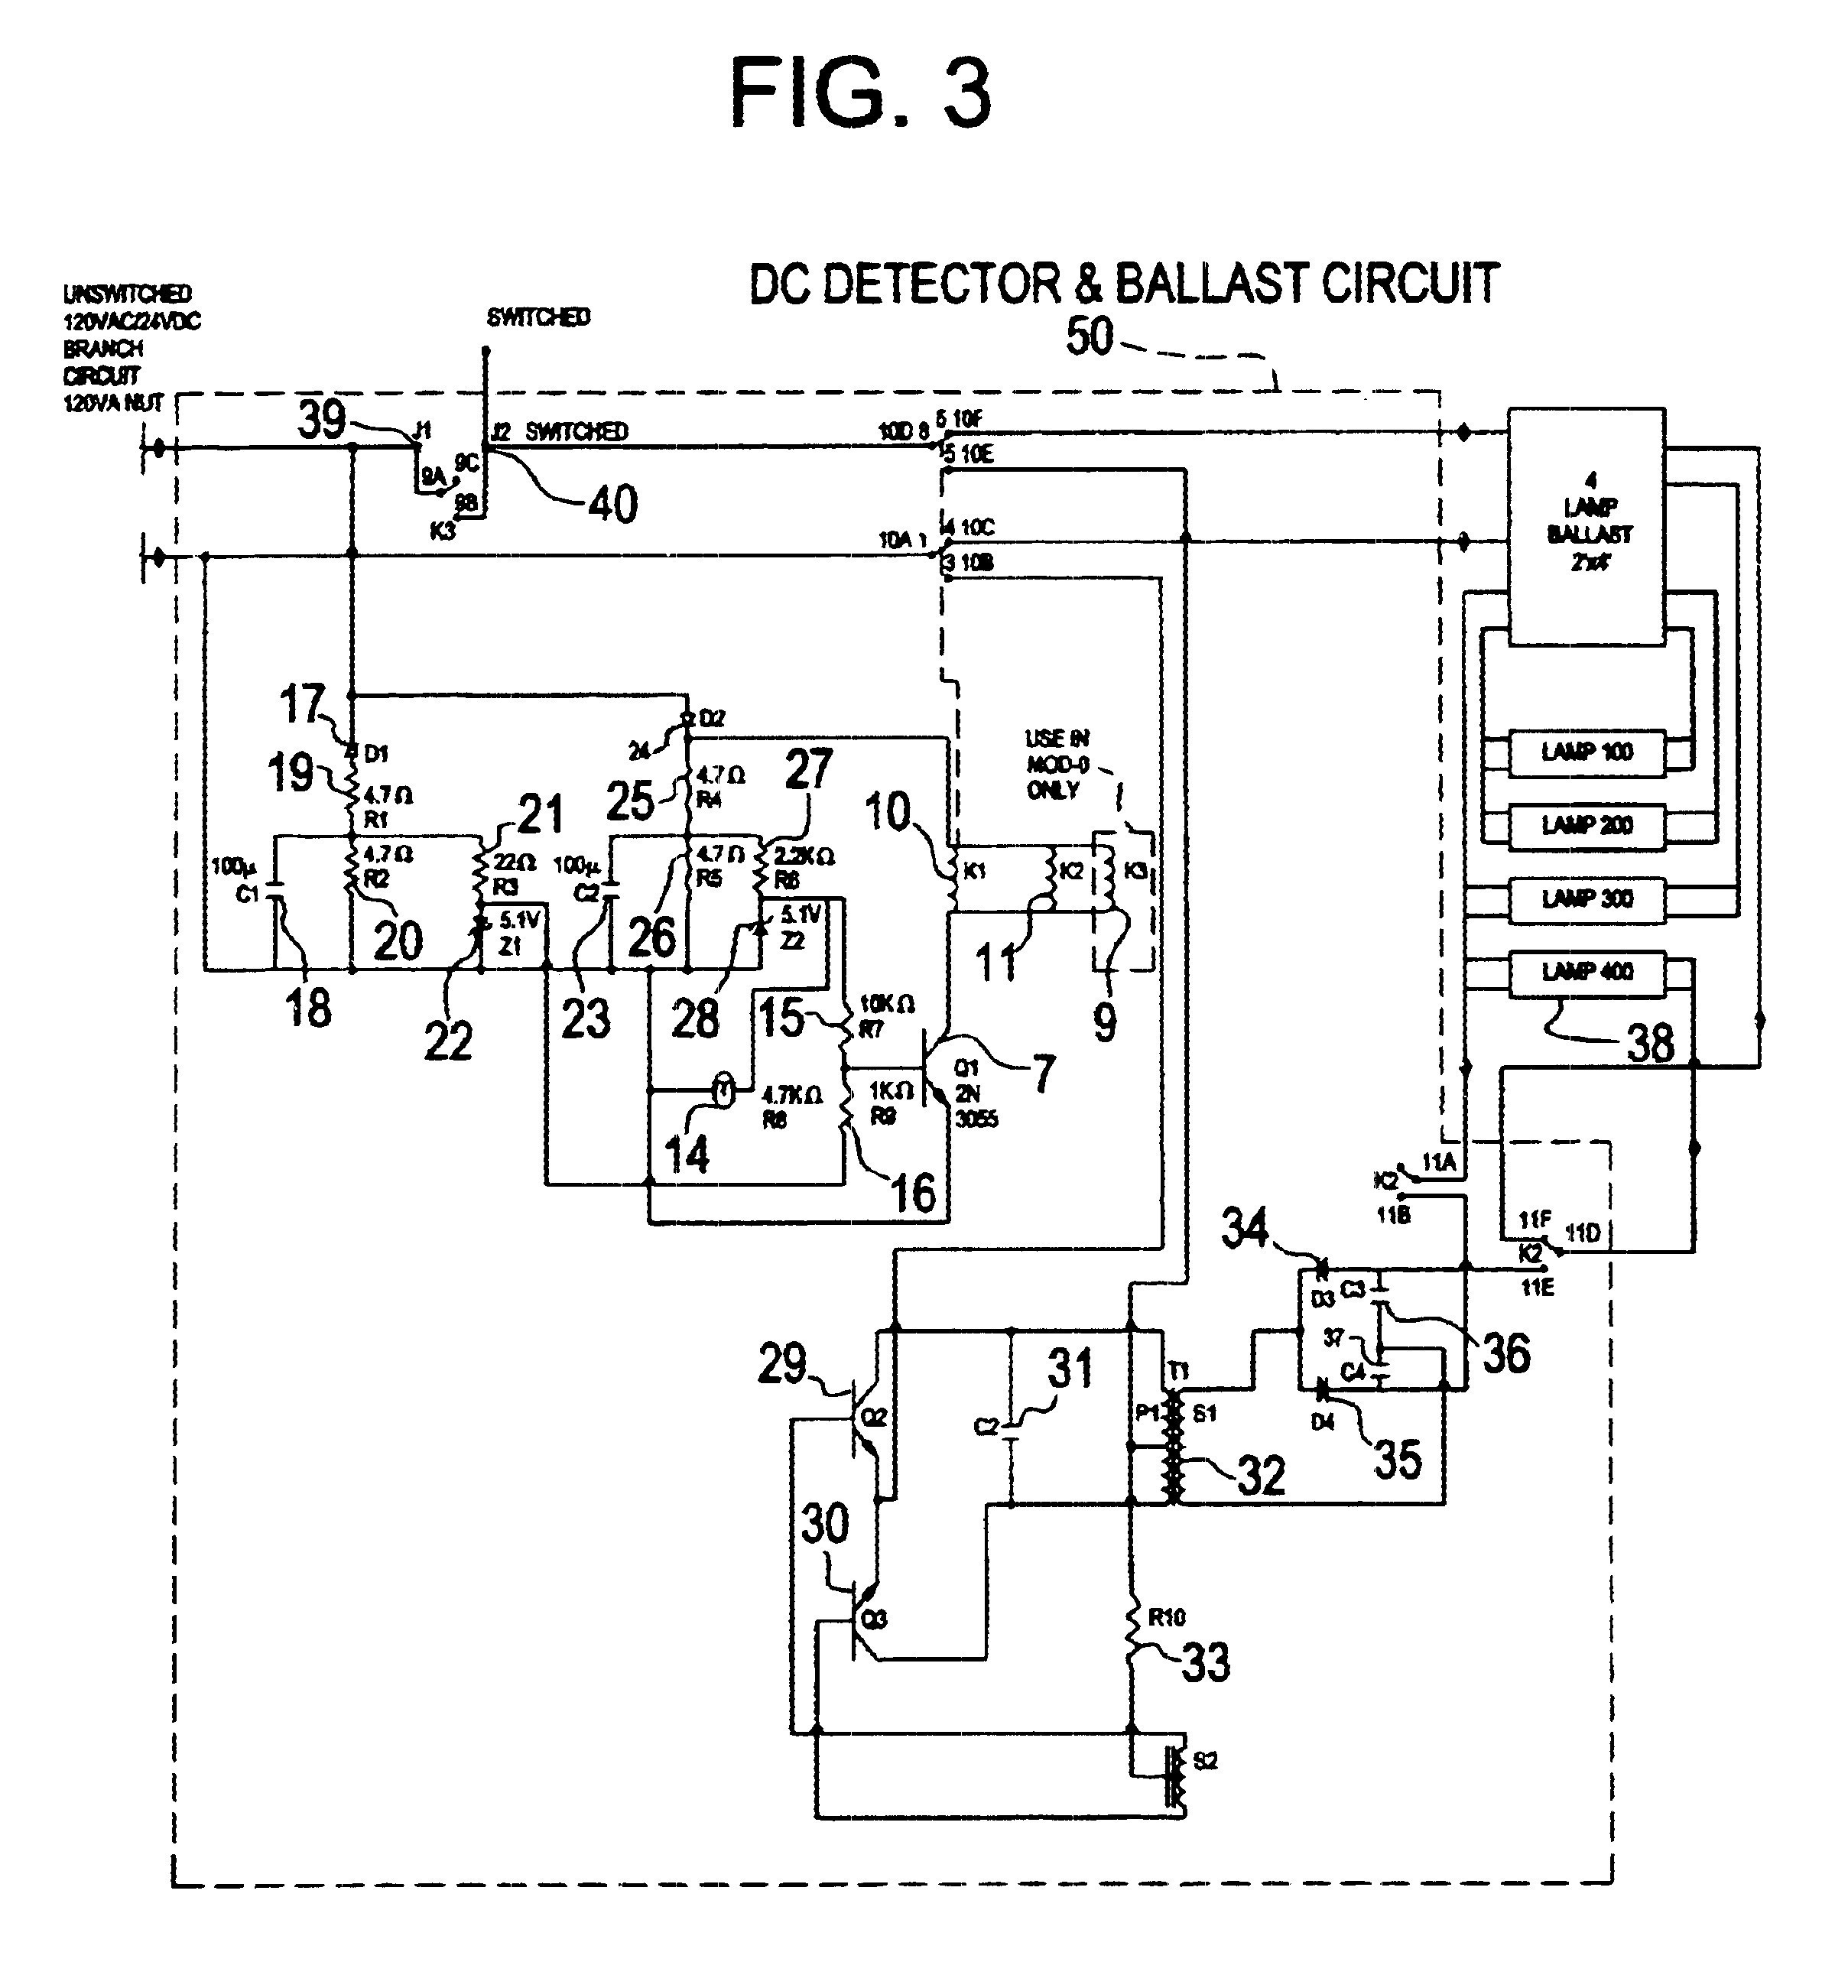 emergency ballast wiring diagrams for electrical schematic diagrams rh ogmconsulting co